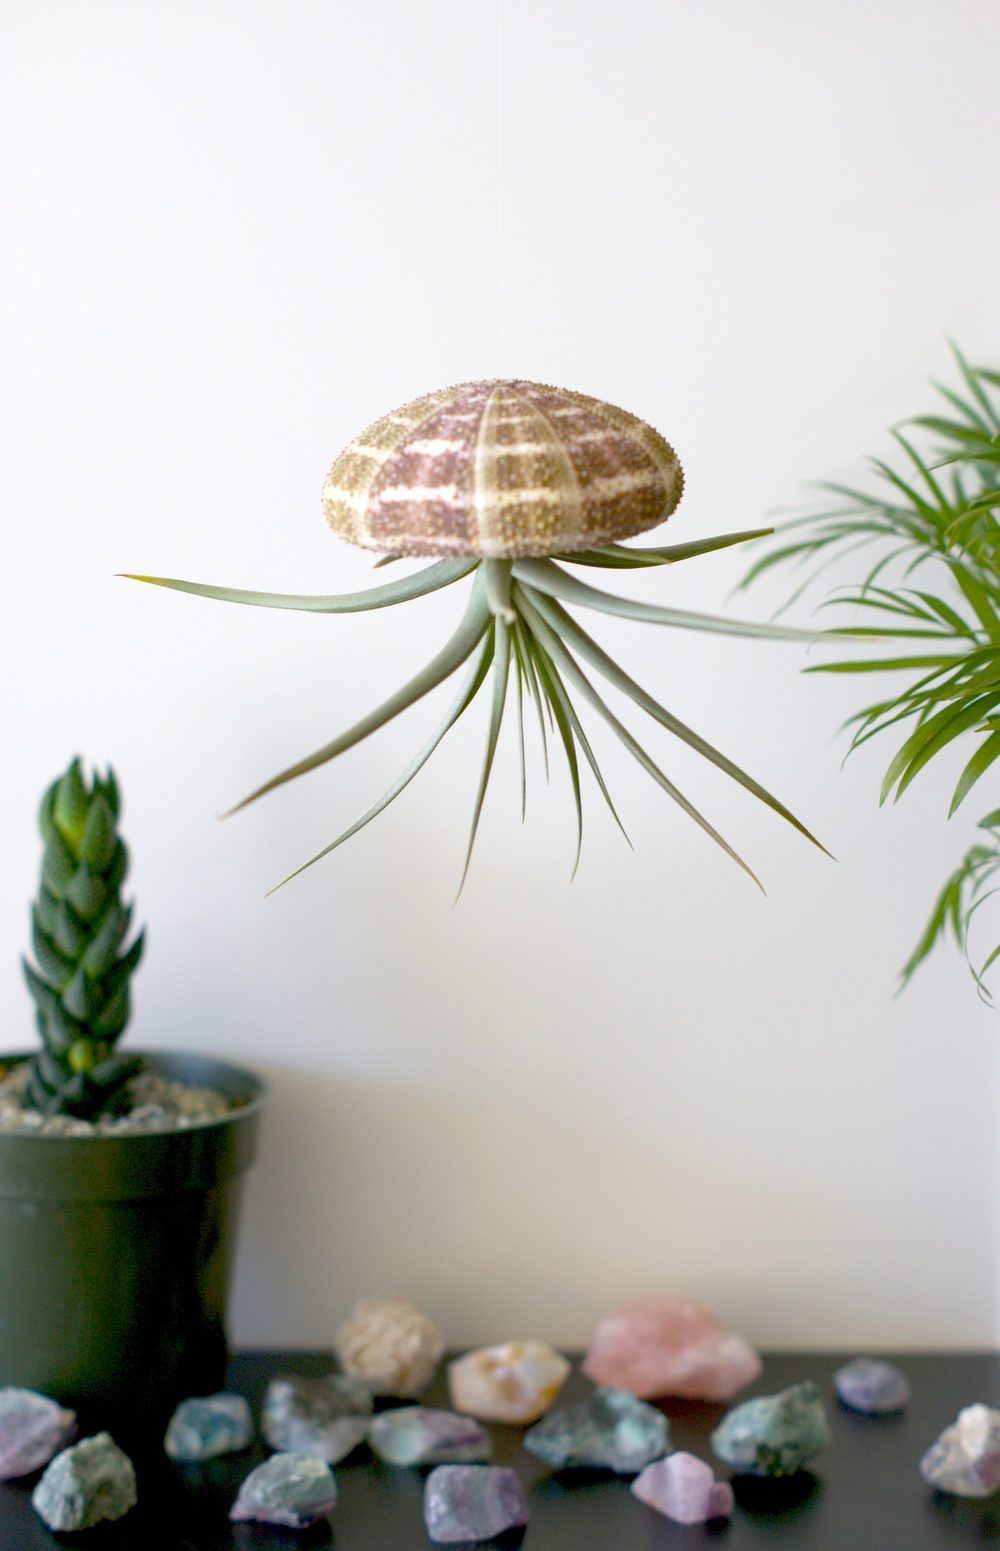 urban jelly fish hanging air plant home decor supplies 3